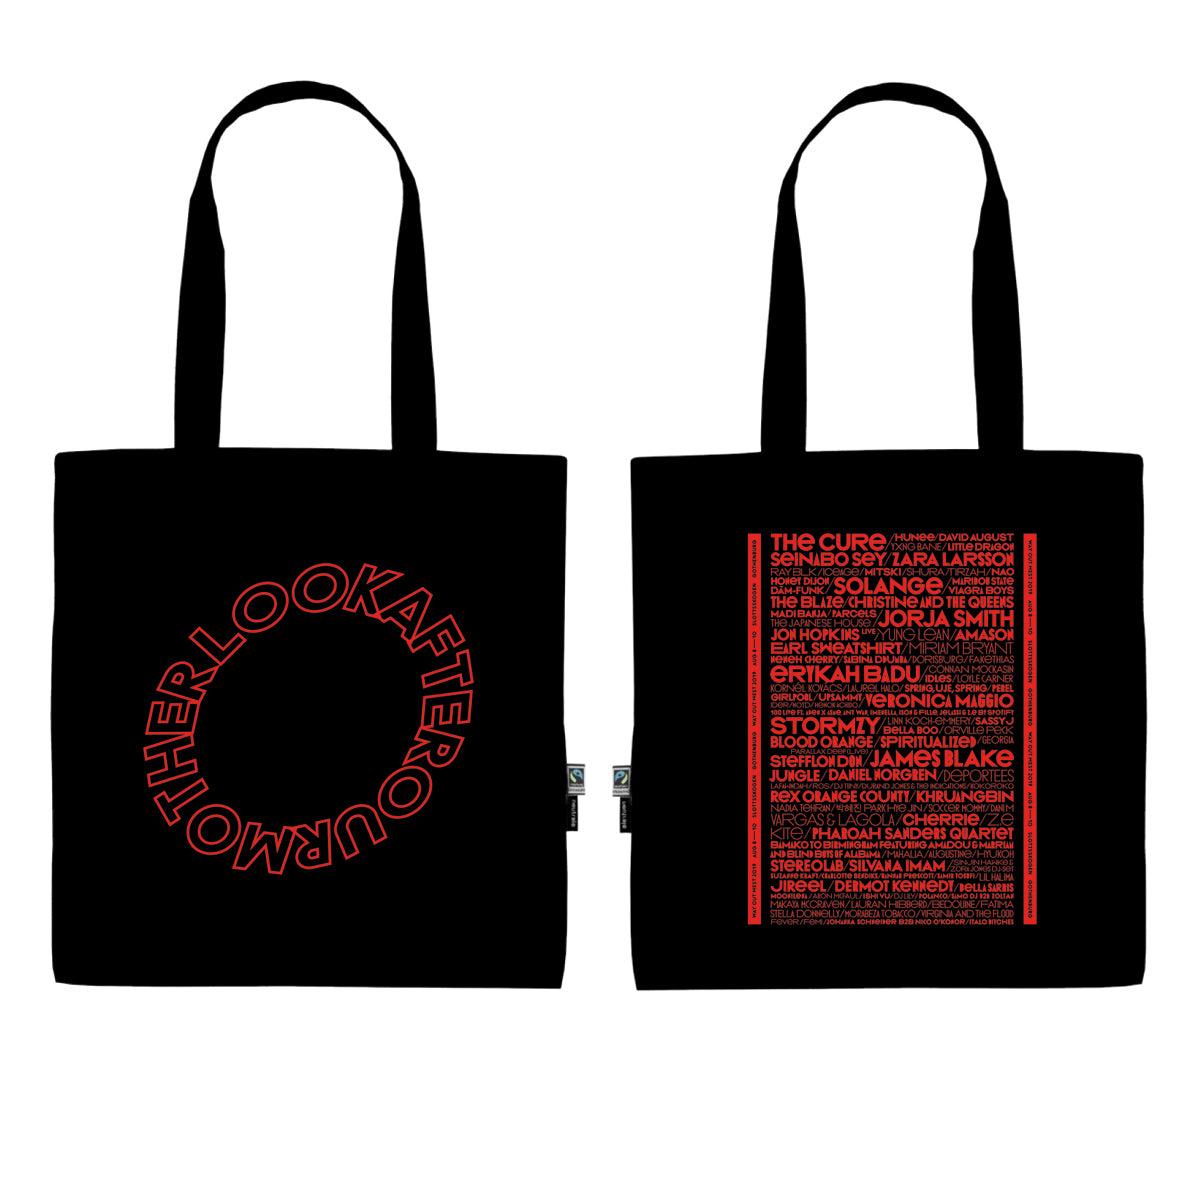 LOOK AFTER OUR MOTHER TOTE BAG